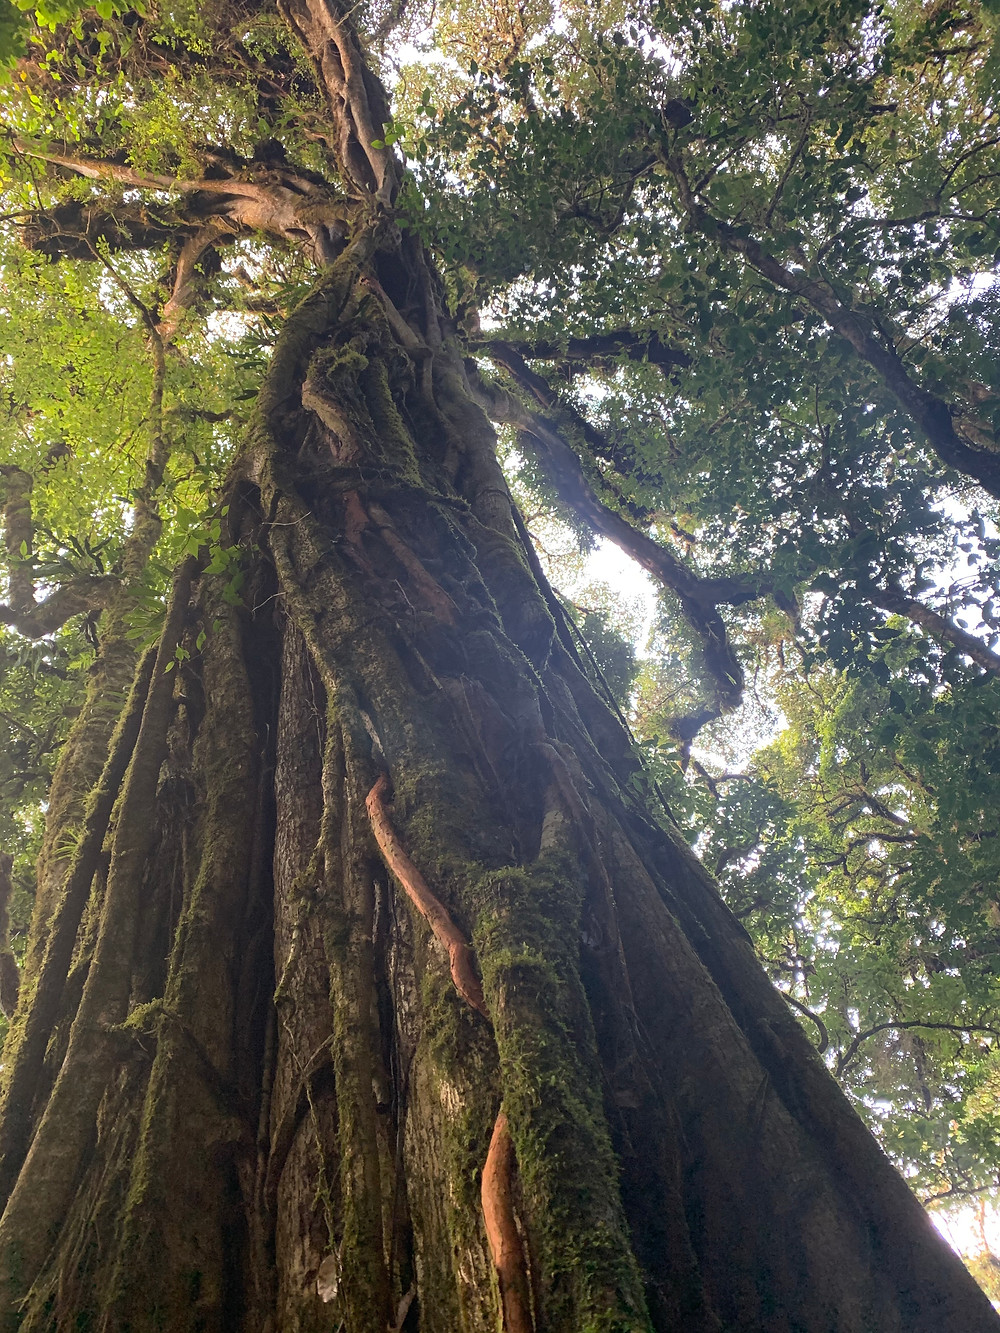 Giant tree with green moss growing up the side towers above you with a lush green canopy. Vines flow to the ground.